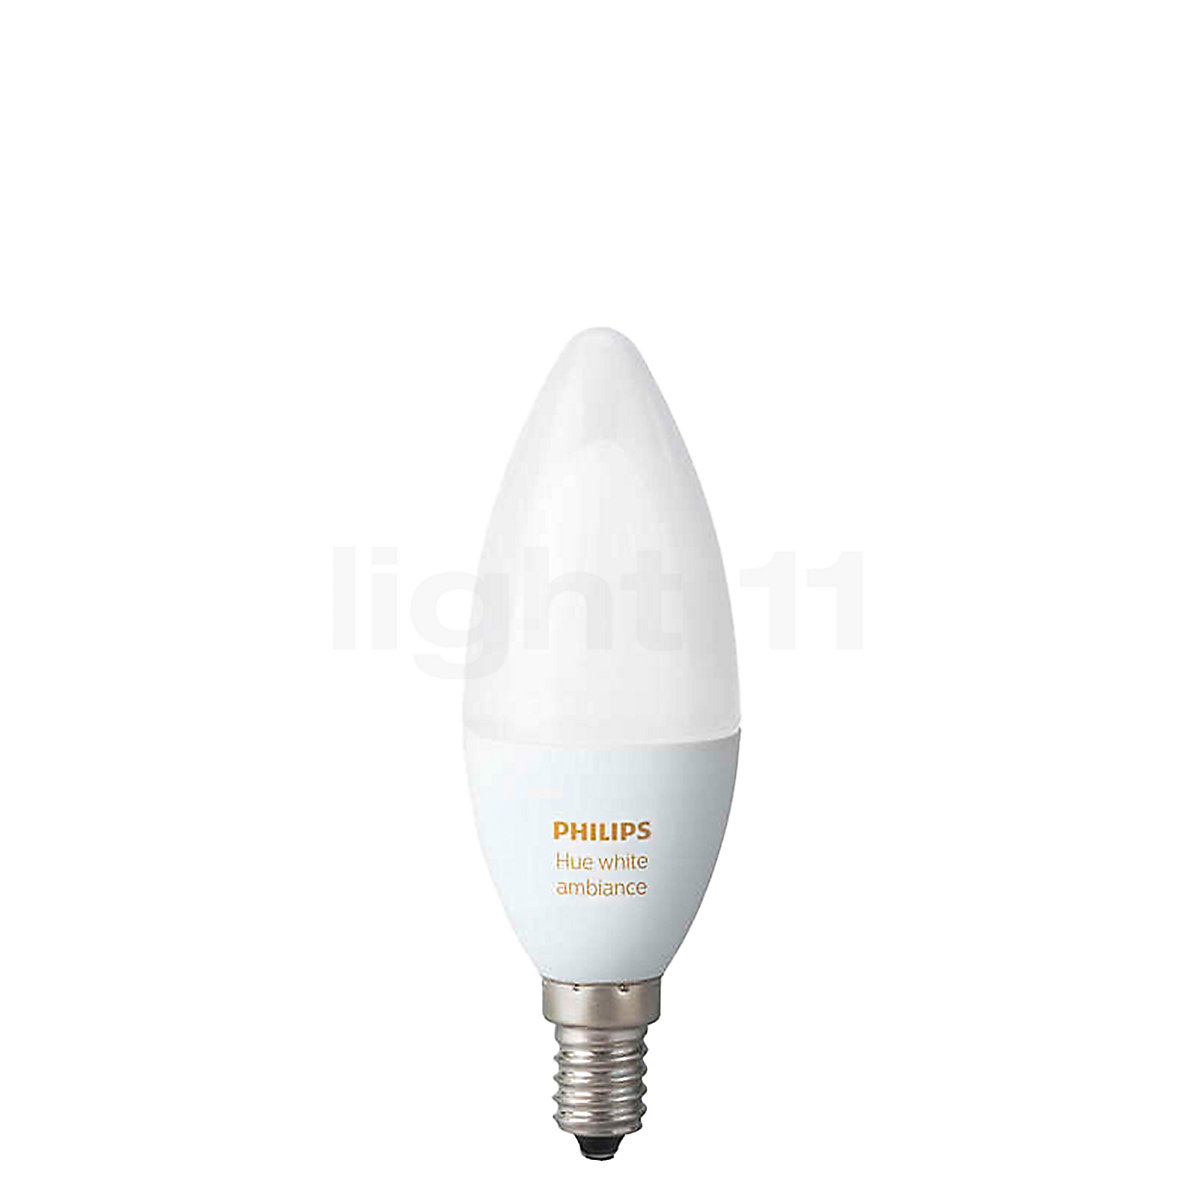 Hue White Ambiance Philips E14 Extension Rj4A5L